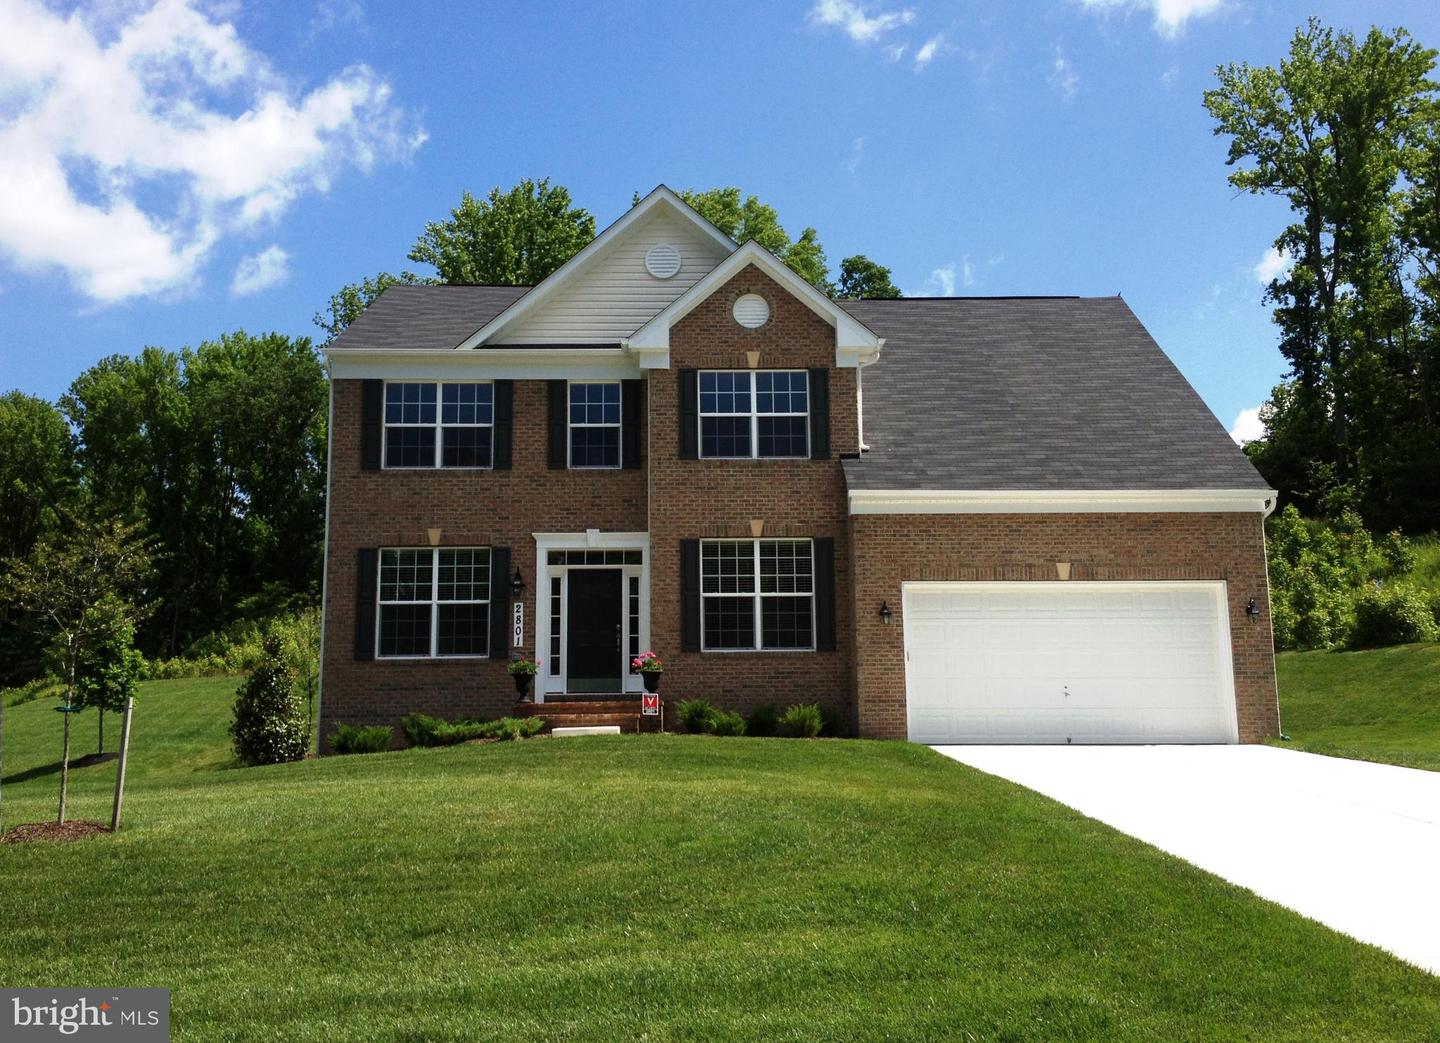 Photo of 25826 S SANDGATES RD, MECHANICSVILLE, MD 20659